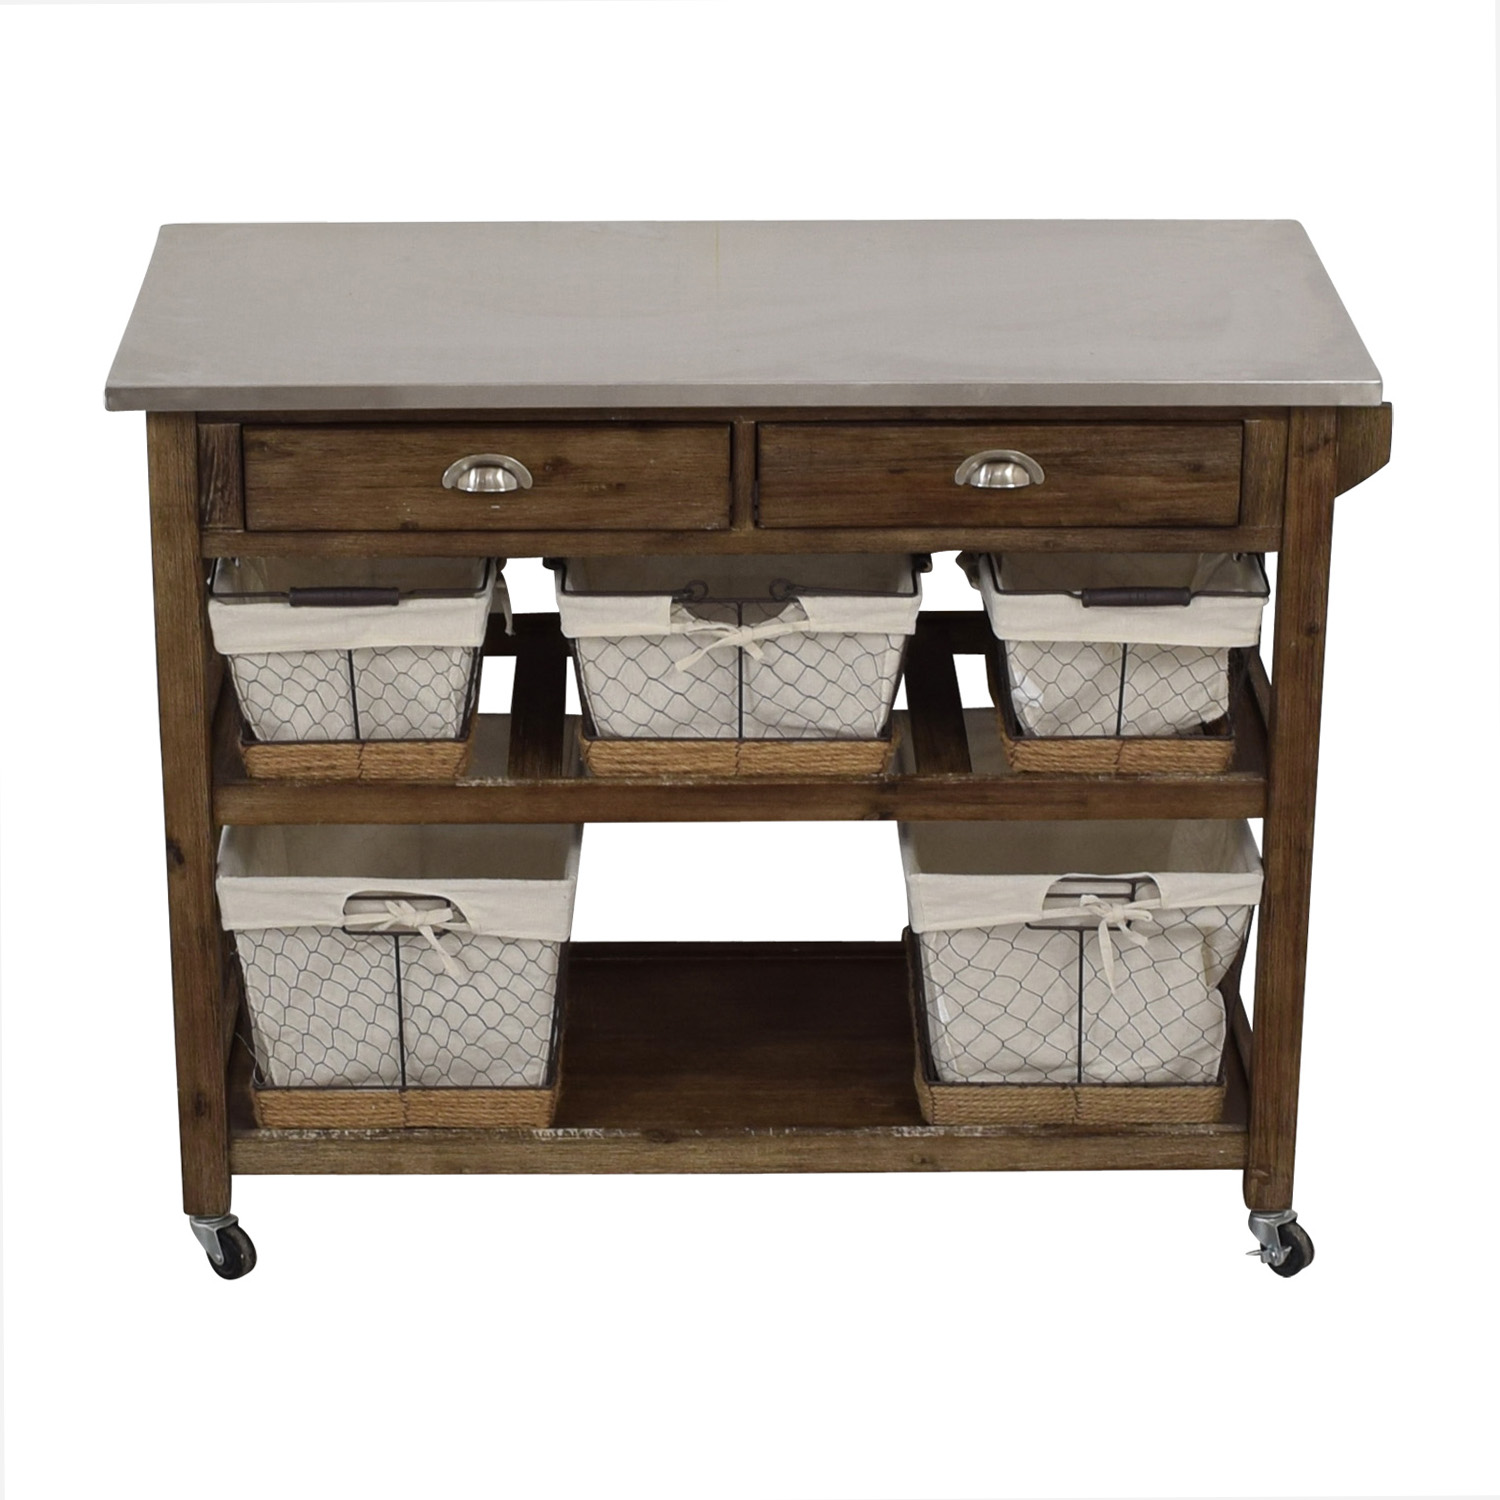 Home Styles Home Styles Two-Drawer Utility Cart with Steel Top and Five Wire Baskets for sale